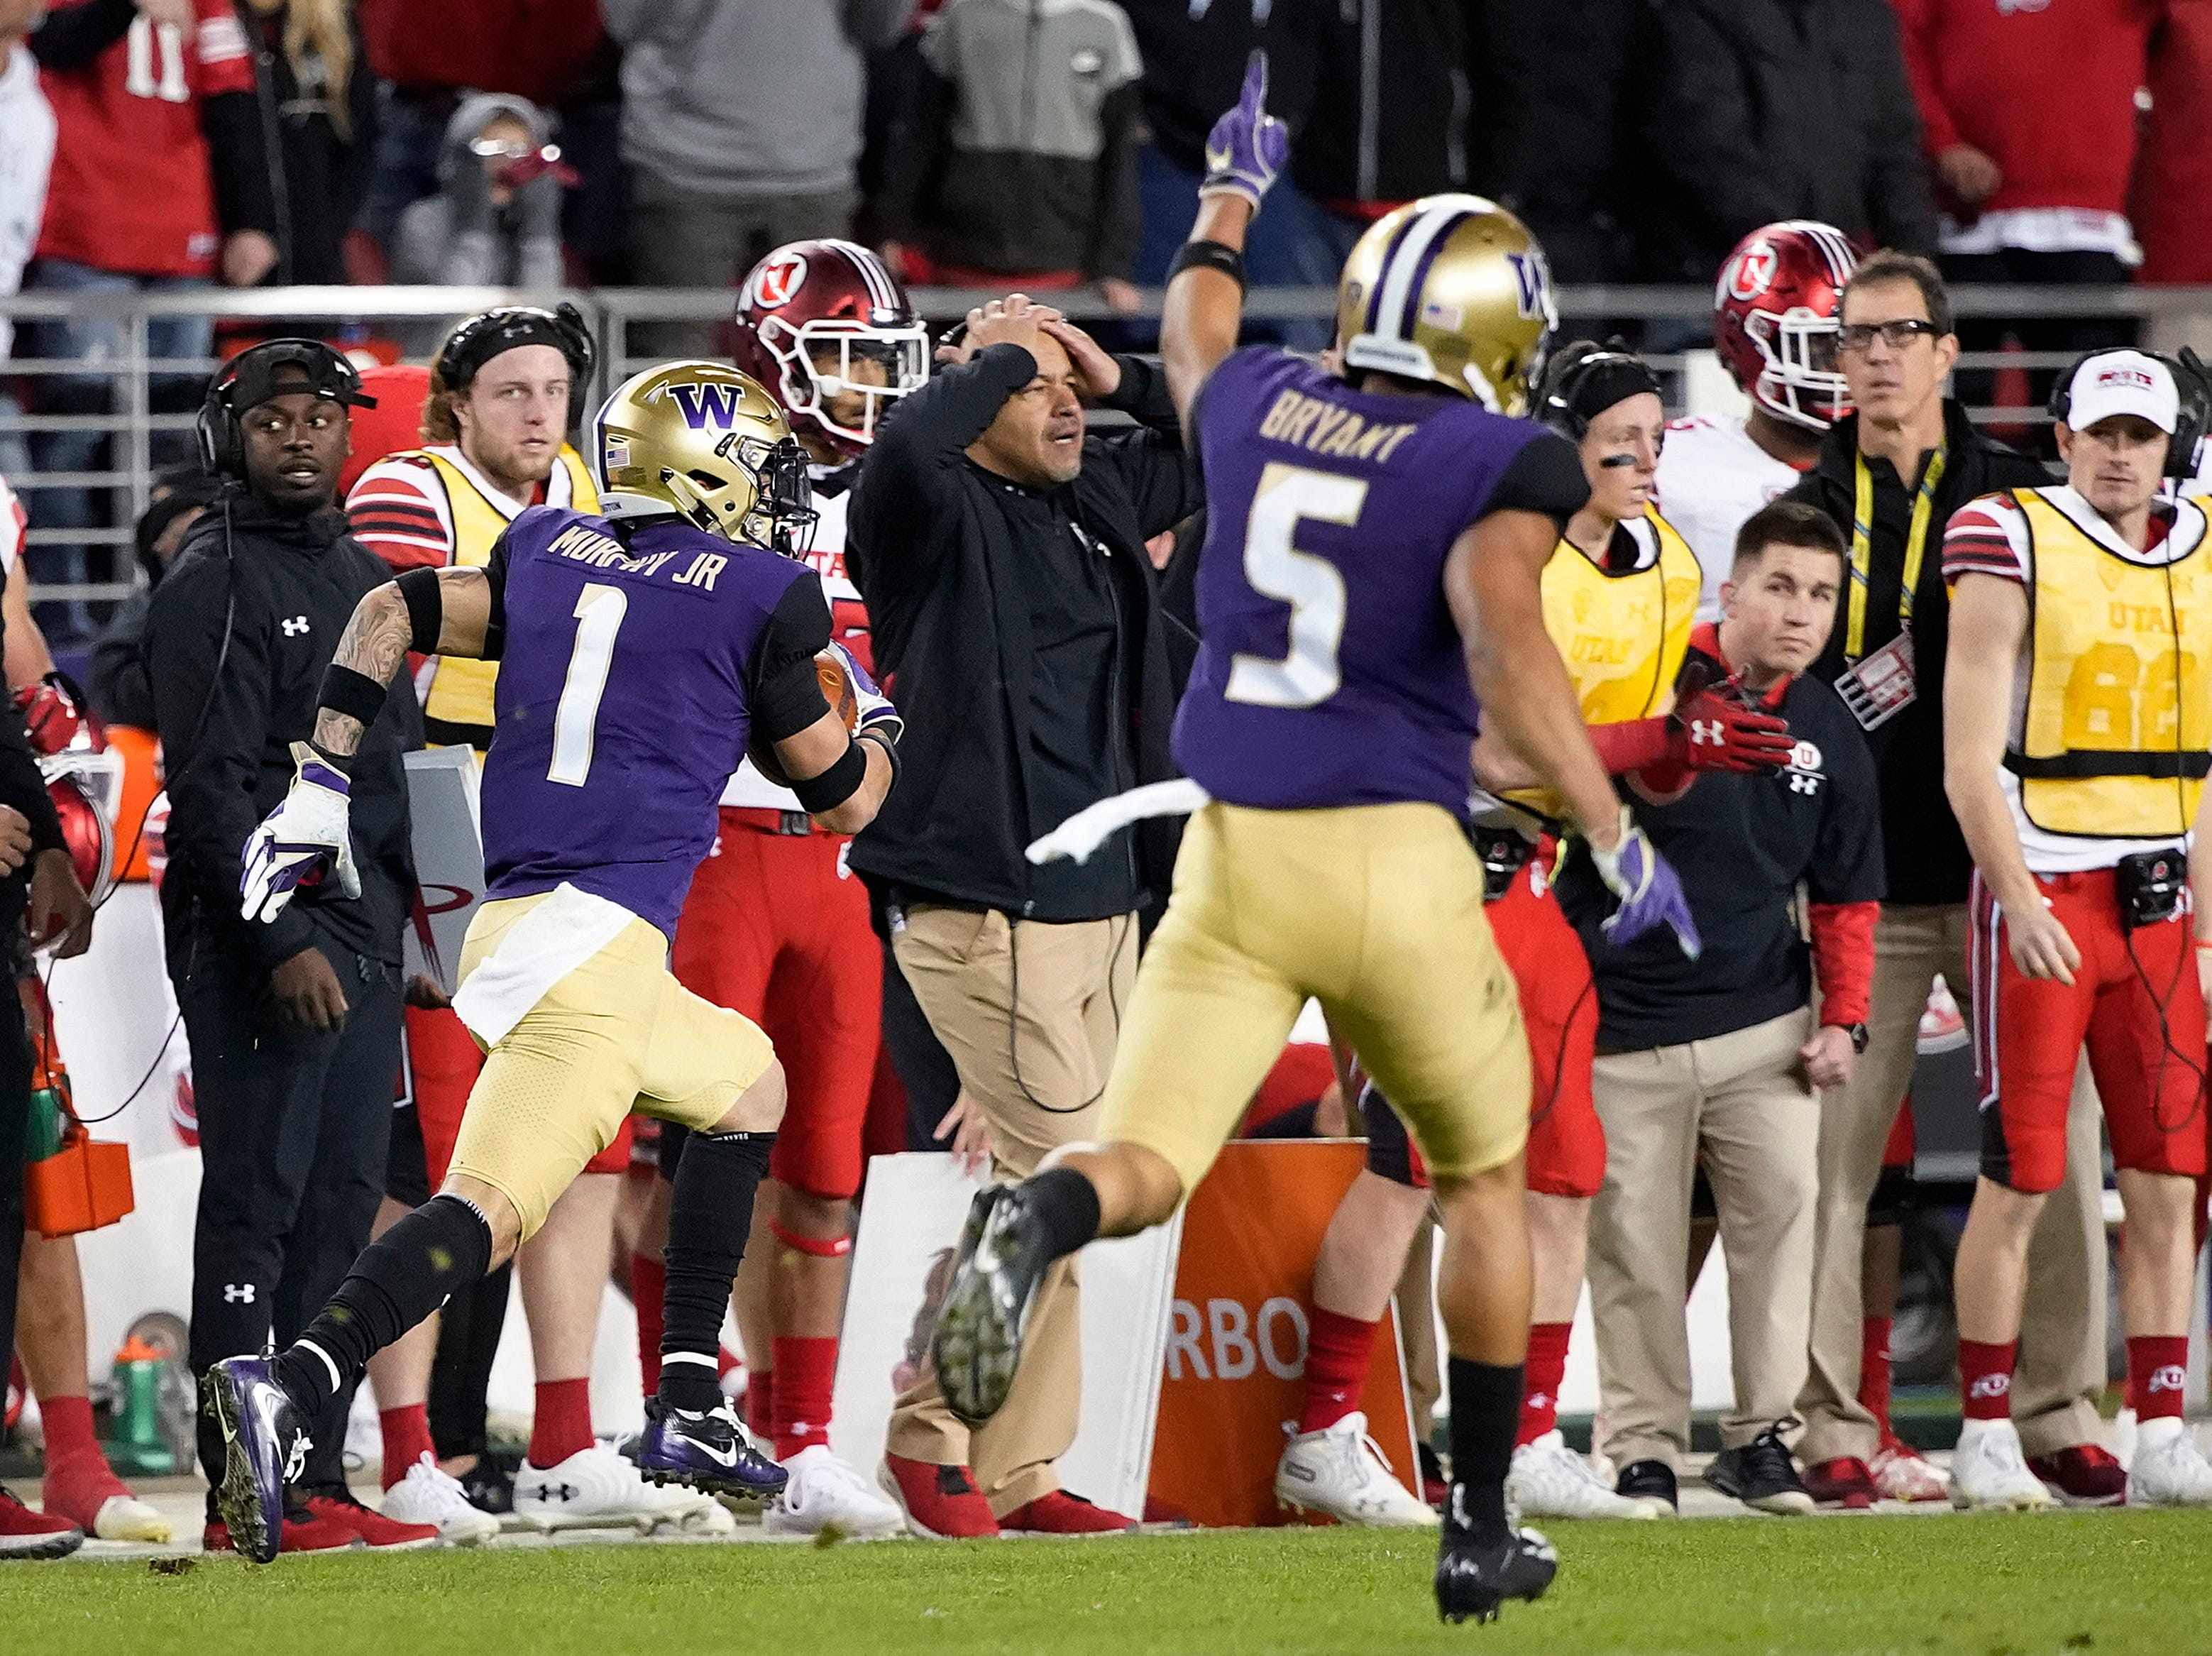 Washington defensive back Myles Bryant (5) celebrates as defensive back Byron Murphy (1) returns an interception for a touchdown against Utah during the second half of the Pac-12 championship game in Santa Clara on Friday night.